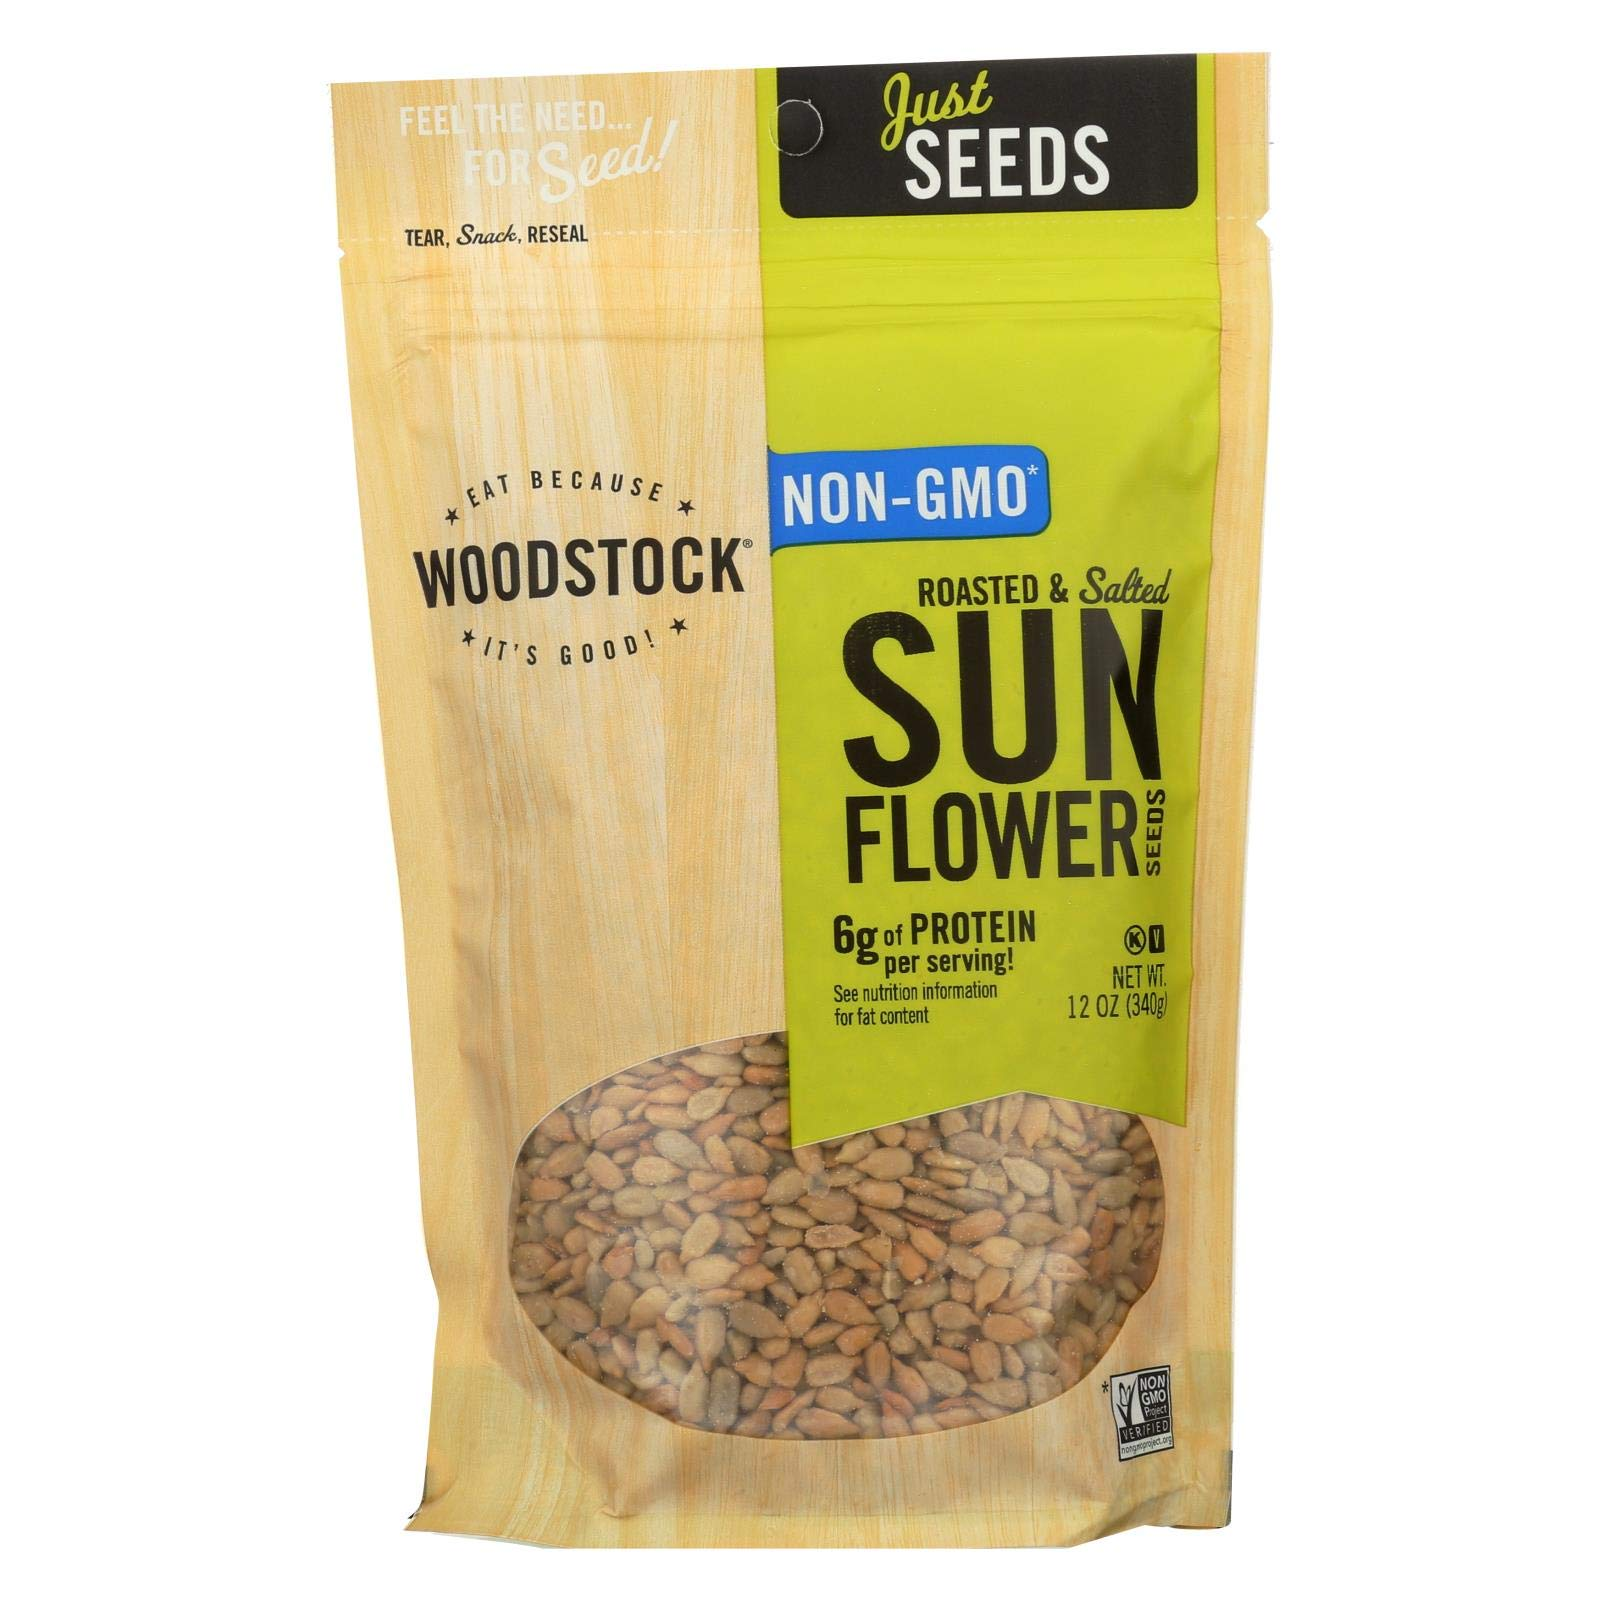 Woodstock - All Natural Sunflower Seeds - Shelled - Roasted and Salted - 12 oz - Case of 8 - Vegan - Non GMO by Woodstock